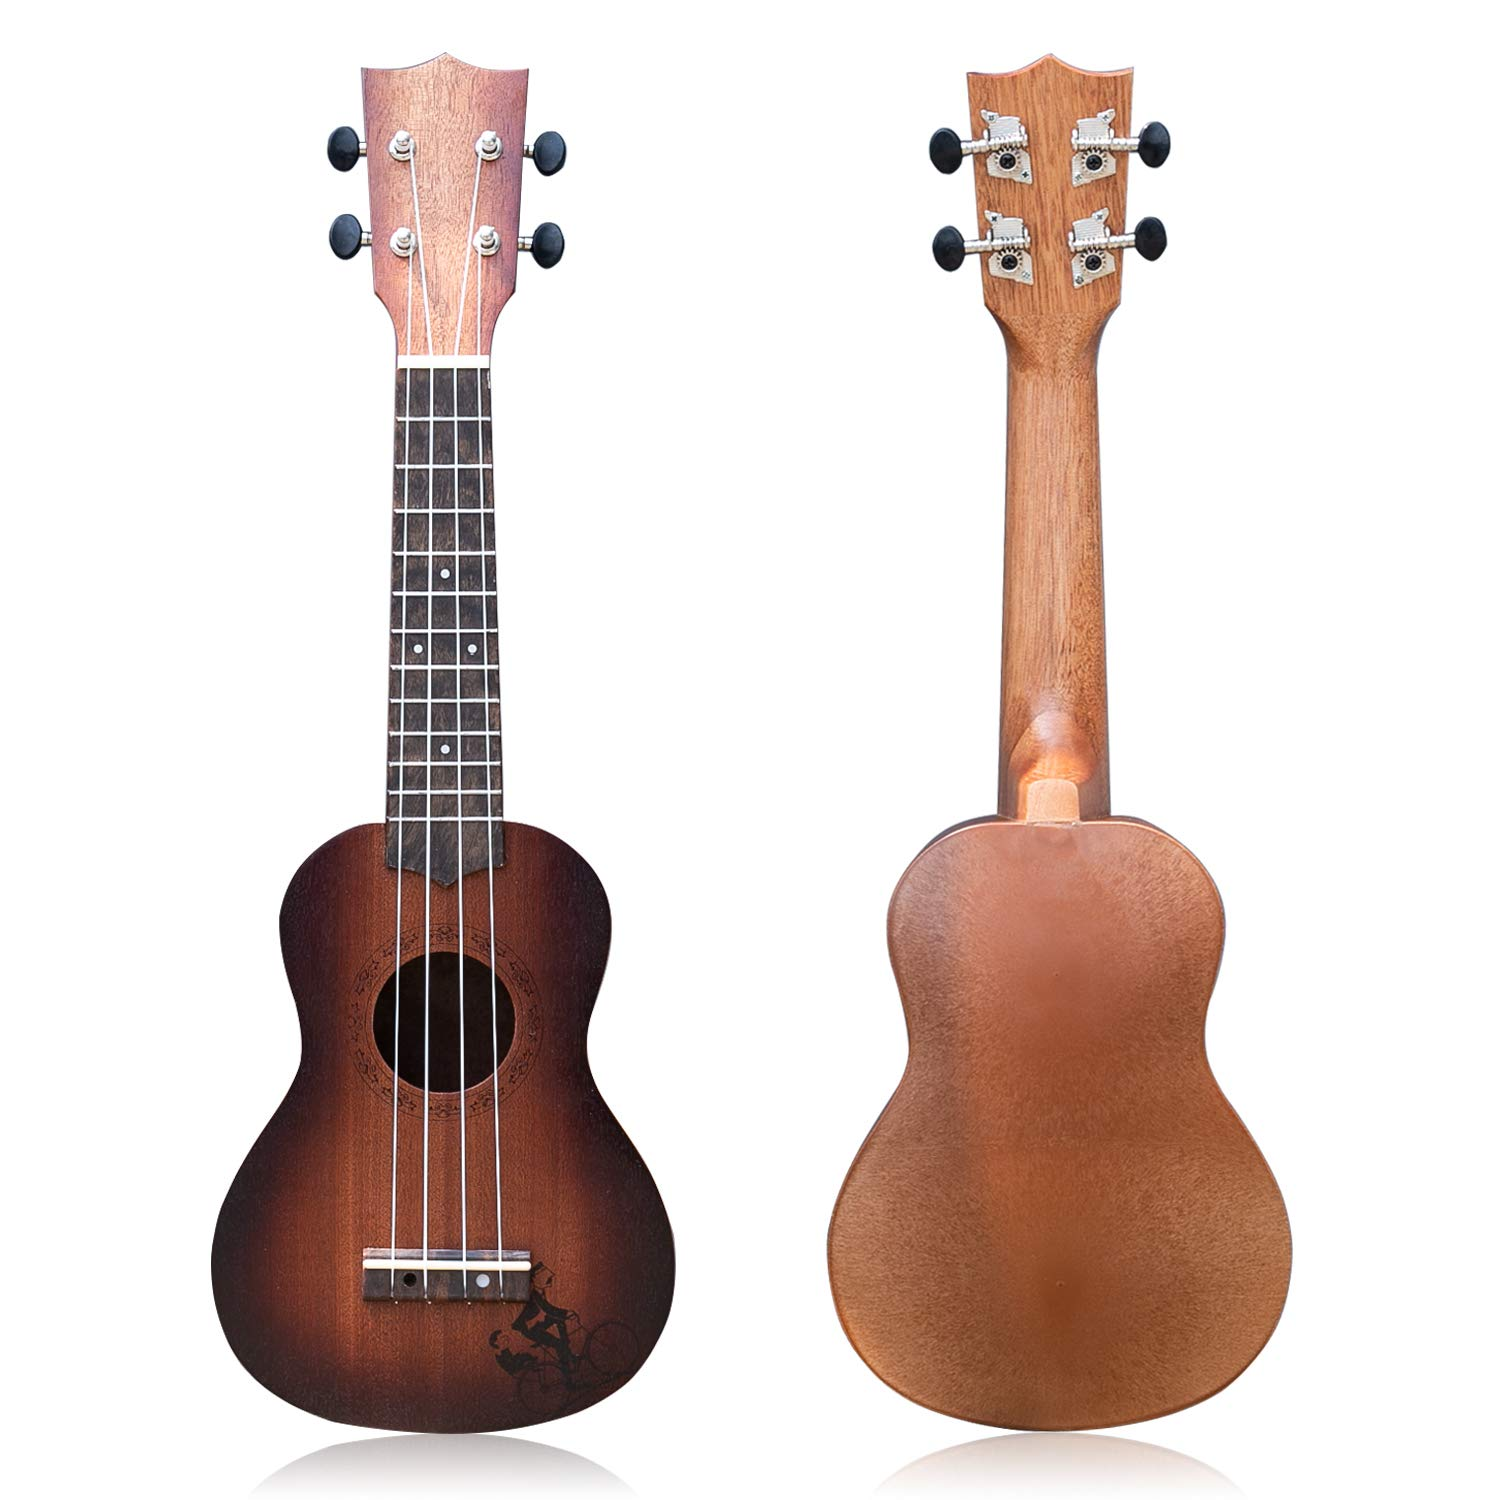 YOLOPLUS+ 21 Inch Wooden Ukulele Guitar Soprano Kid's Toy 4 Strings Musical Instruments Educational Learning with Picks Primary Tutorial Backpack for Toddler Beginner Keep Tone Anti-Impact by YOLOPLUS+